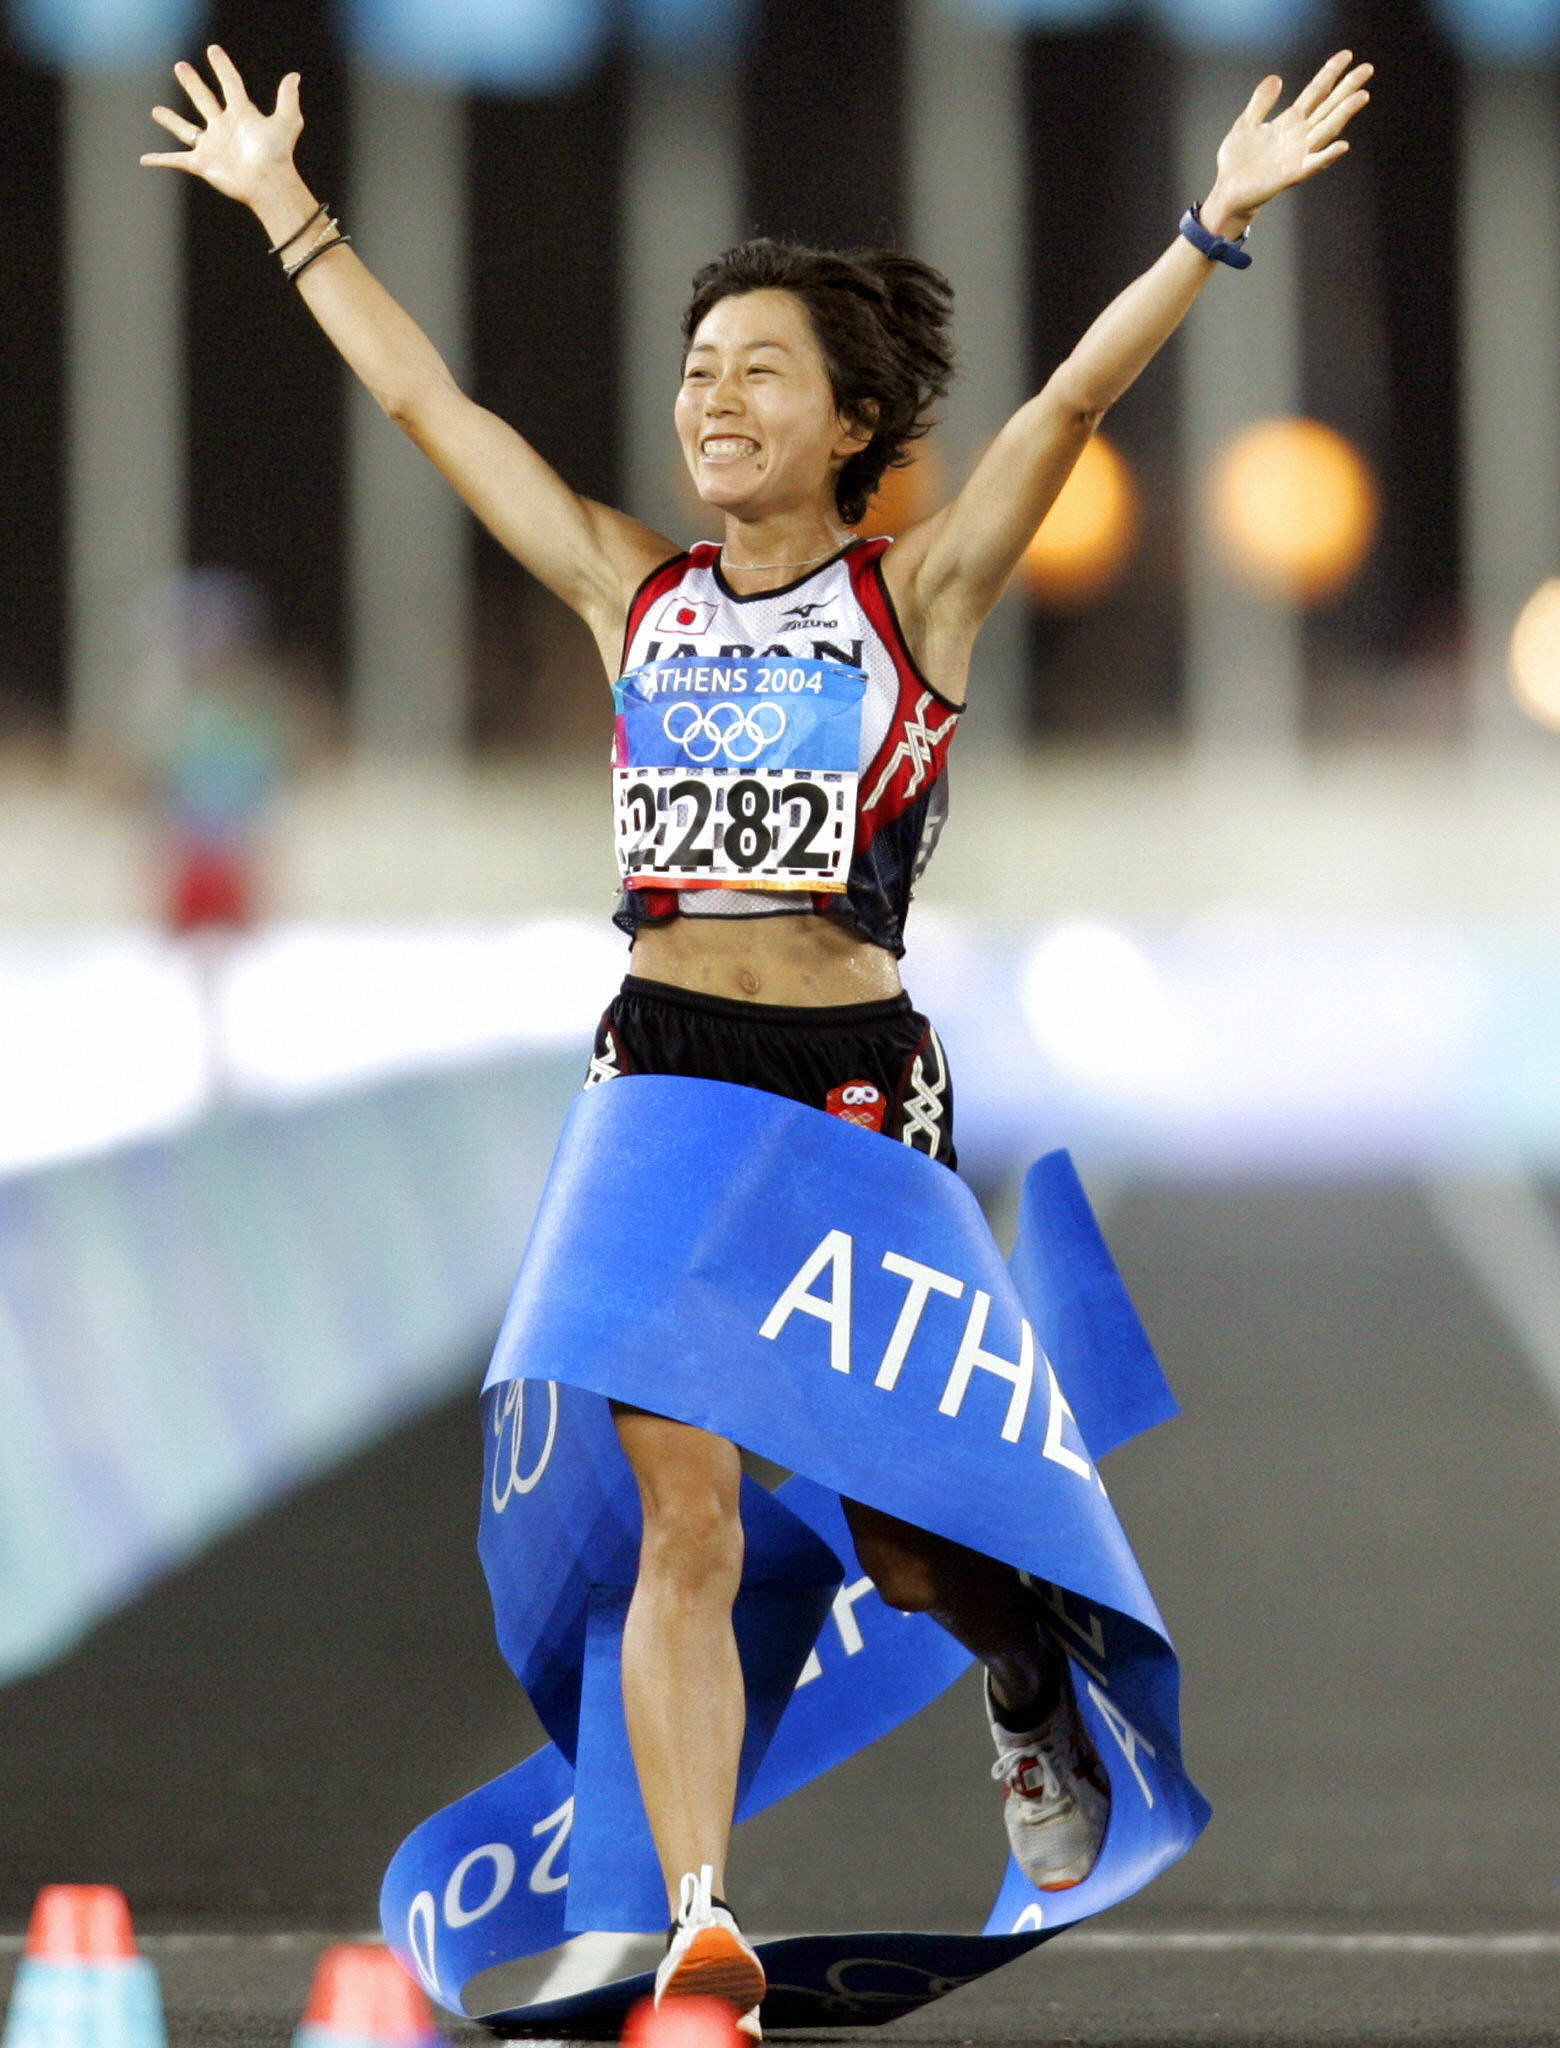 Japan's Mizuki Noguchi won the women's Olympic marathon at Athens 2004 in hot conditions ©Getty Images